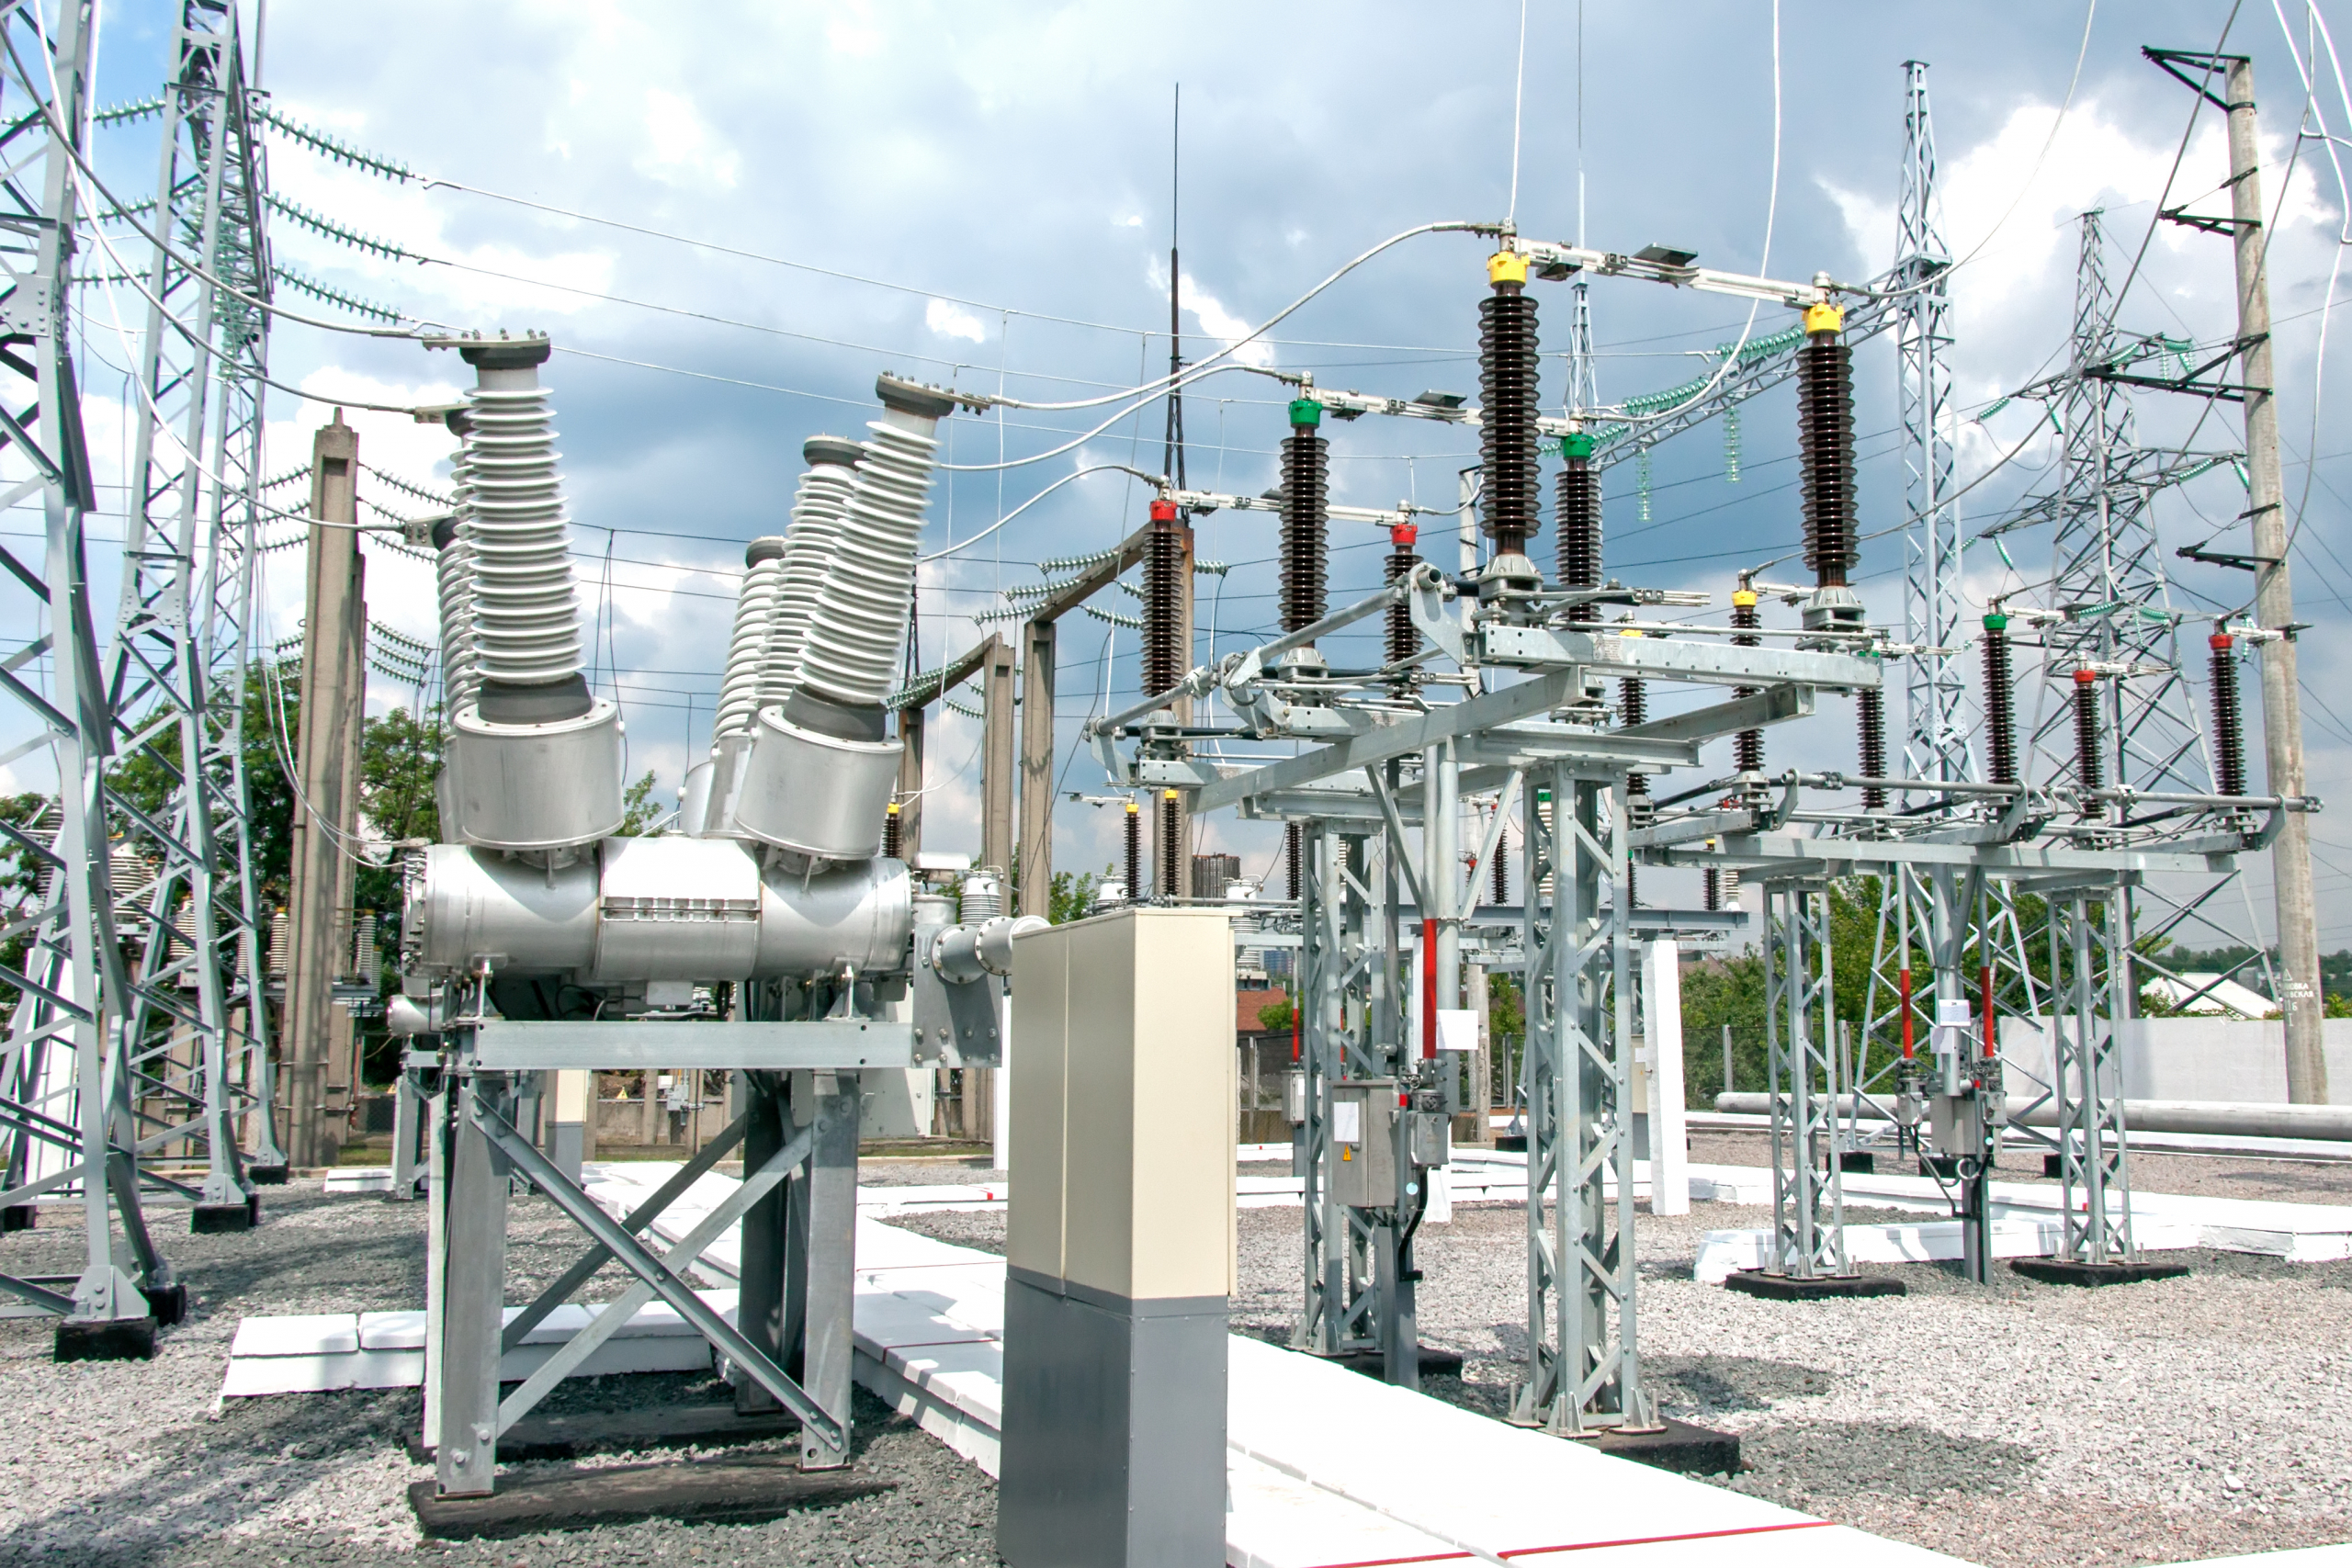 The image compliments the article text. It shows a substation as a visual example of one Imperia Engineering Partners recently designed for an aluminum plant. The project included transformers, breakers, switchgear, overhead transmission lines, and protection & control.